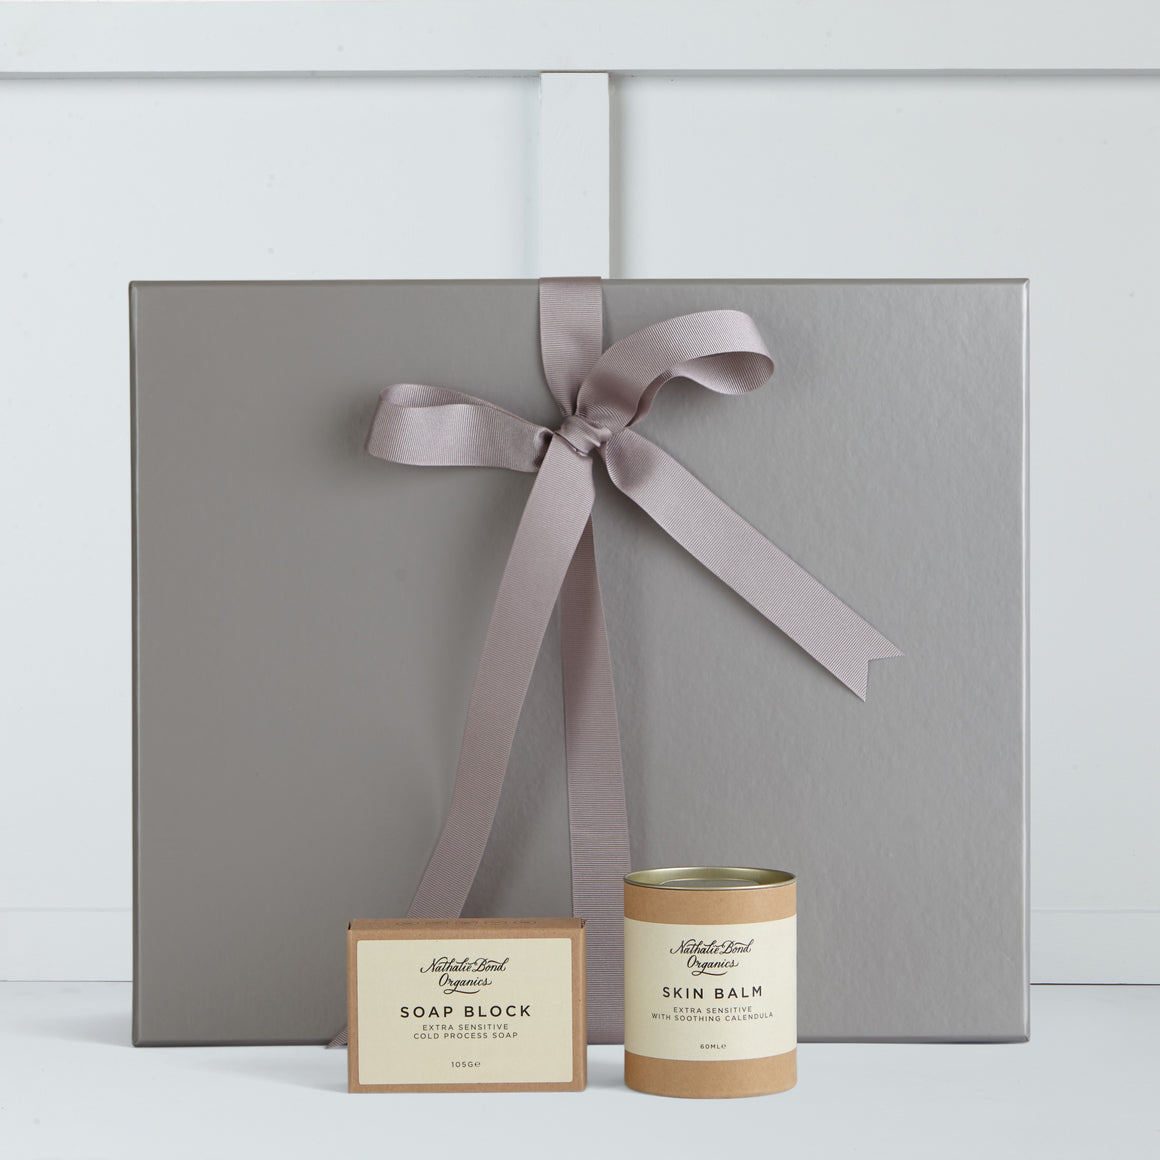 Extra sensitive skin balm and extra sensitive skin soap block by Nathalie Bond